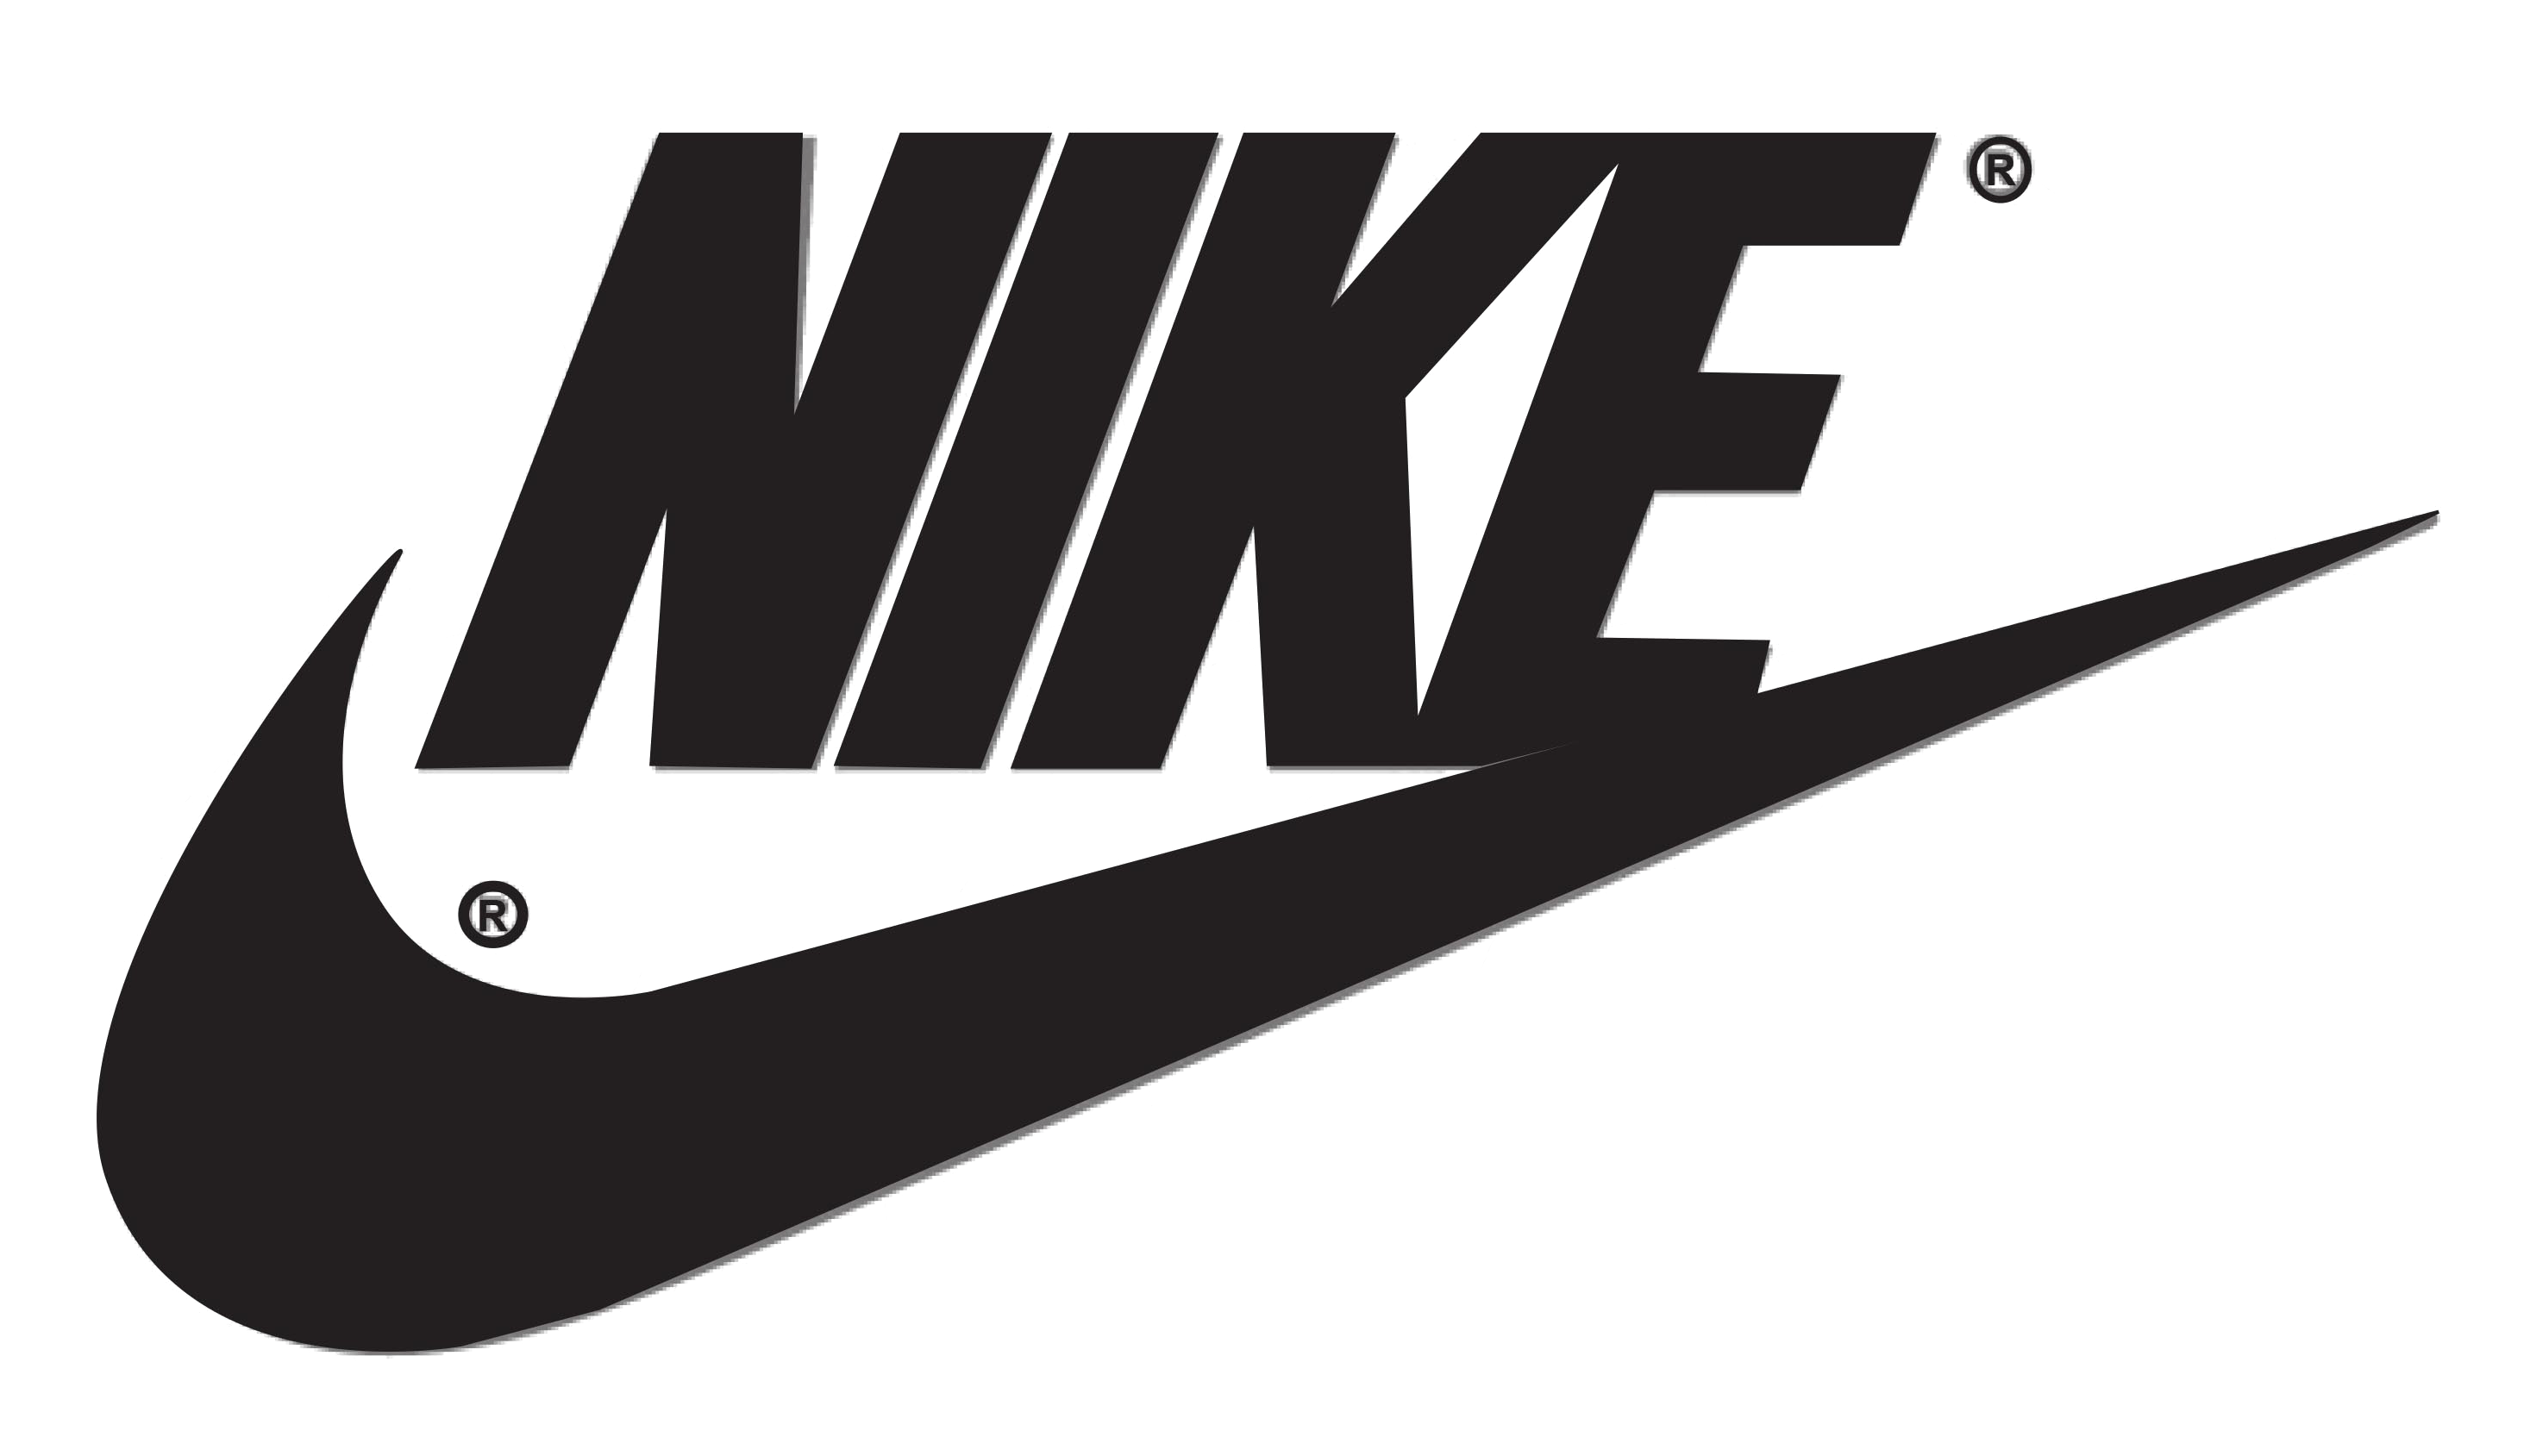 transparent nikes url